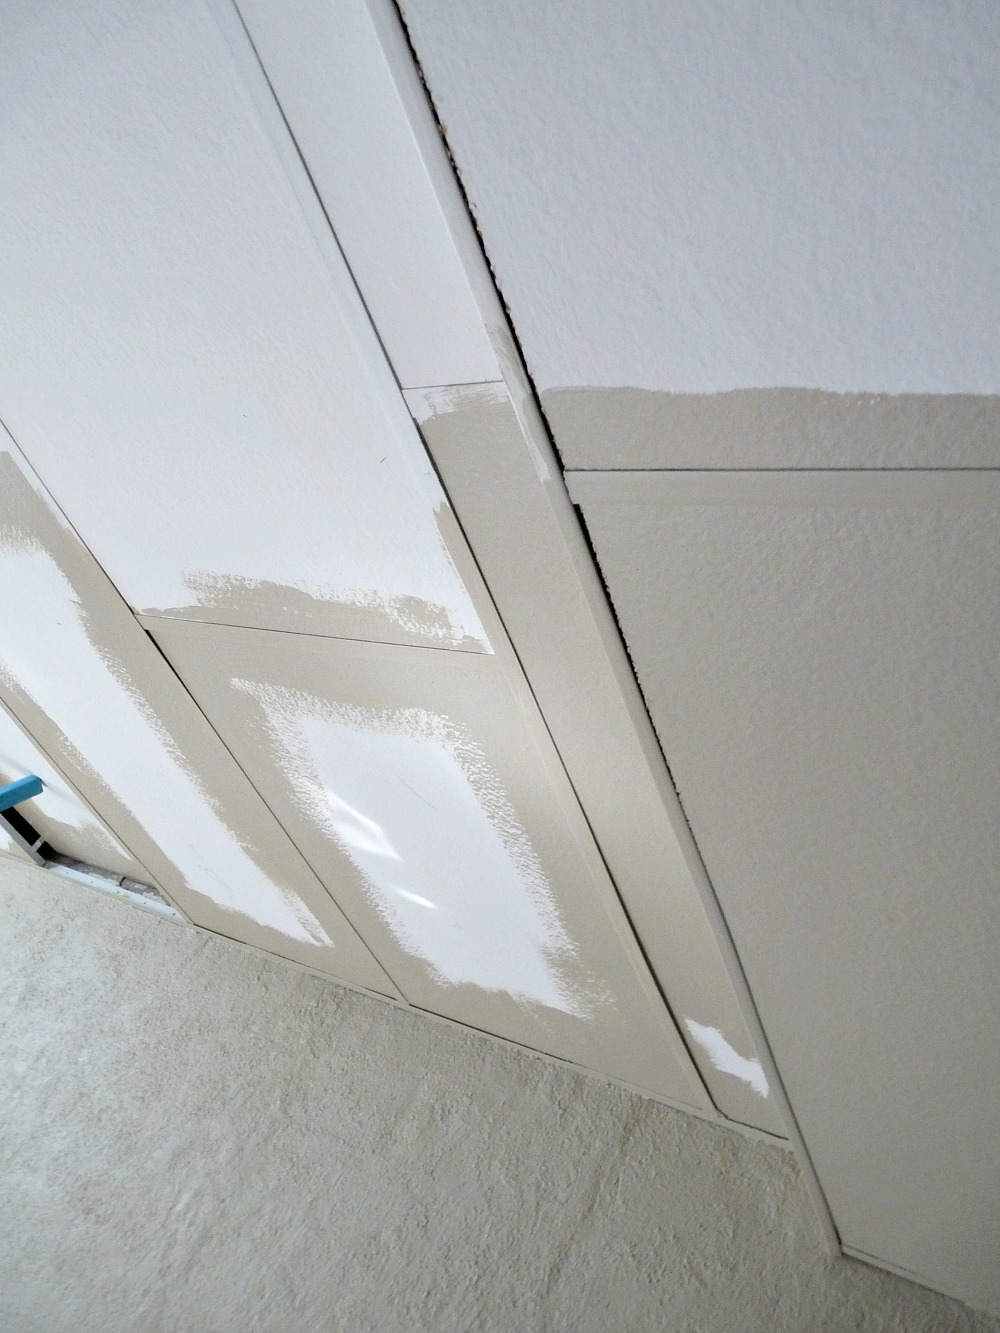 Basement update how to paint drop ceilings you cannot remove cannot remove ceiling tiles heres how to paint them doublecrazyfo Choice Image